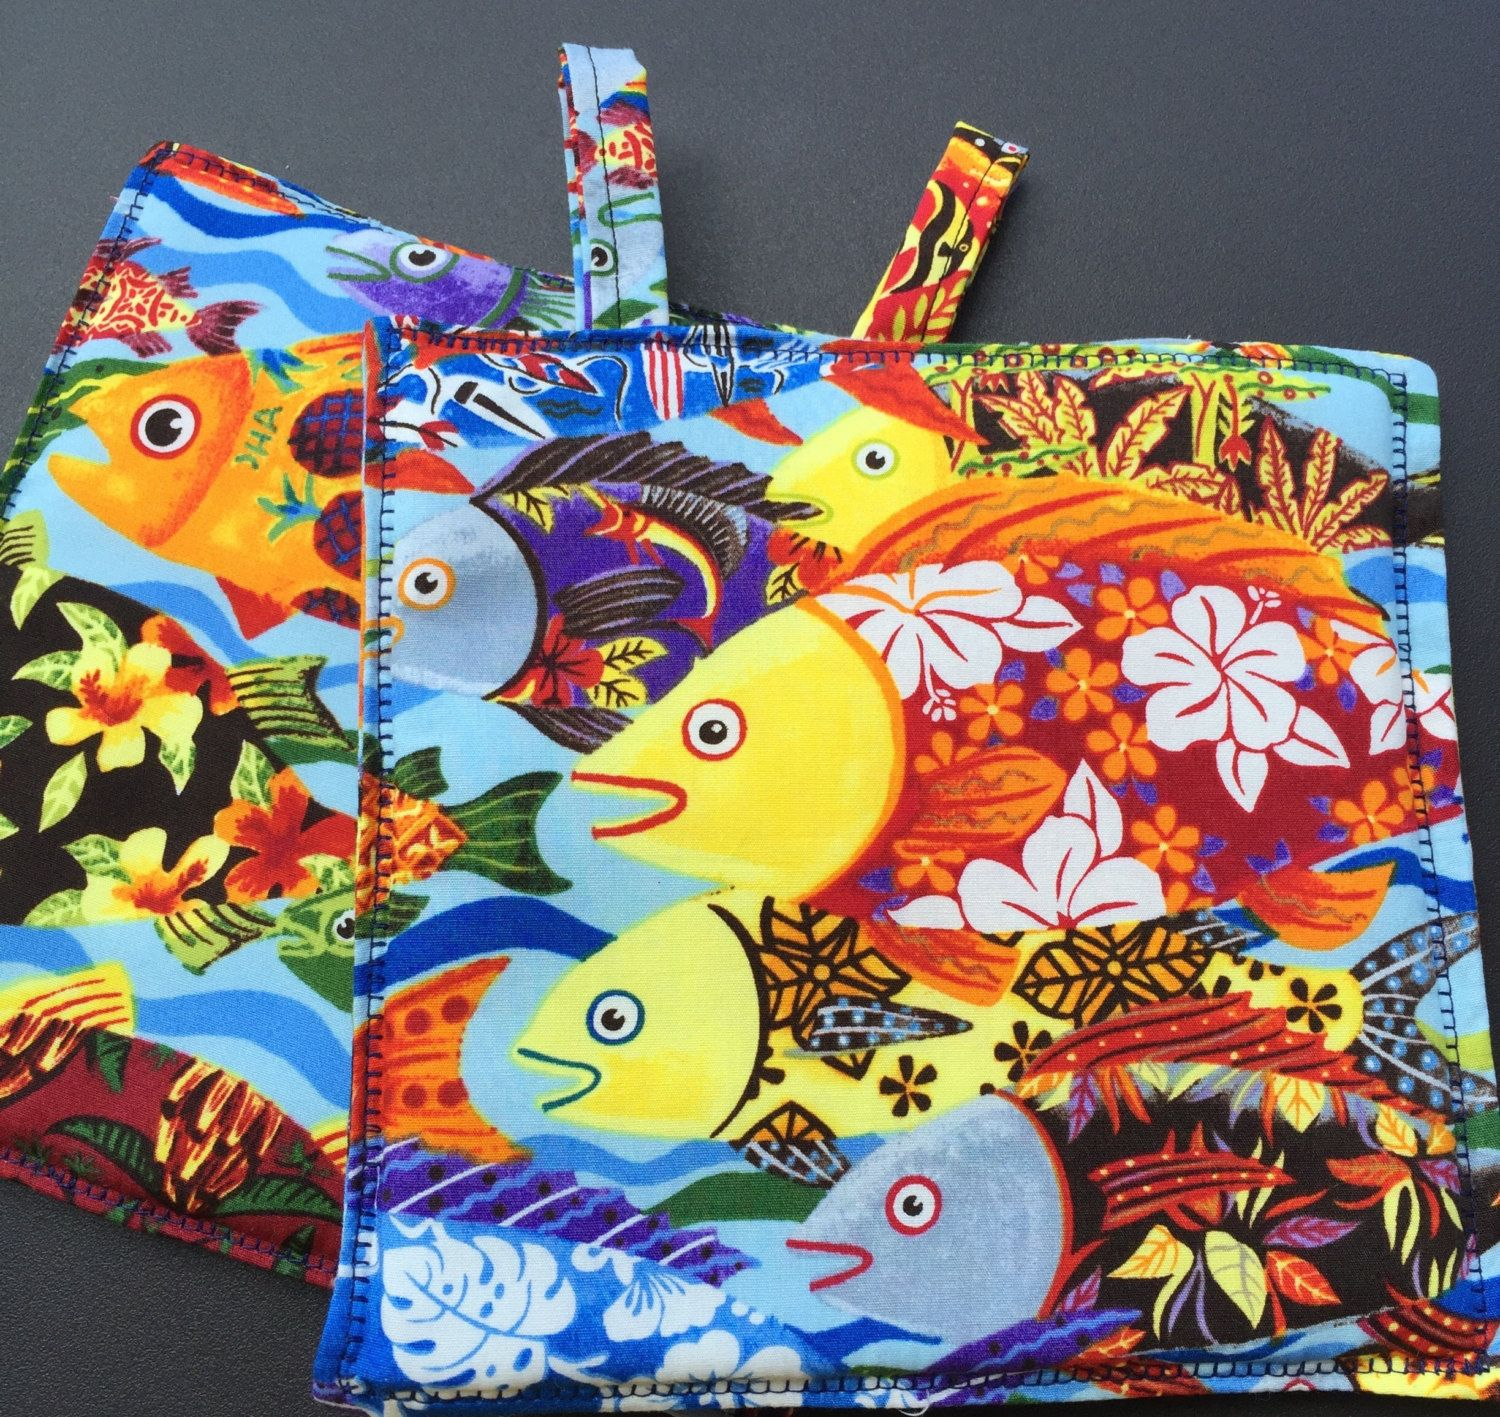 Pot holders, oven mitts, made in Hawaii, oven gloves, handmade, hot pads, cooking mitts, linens, Hawaiian, holders, home décor, hostess gift by StitchesSayItBest on Etsy